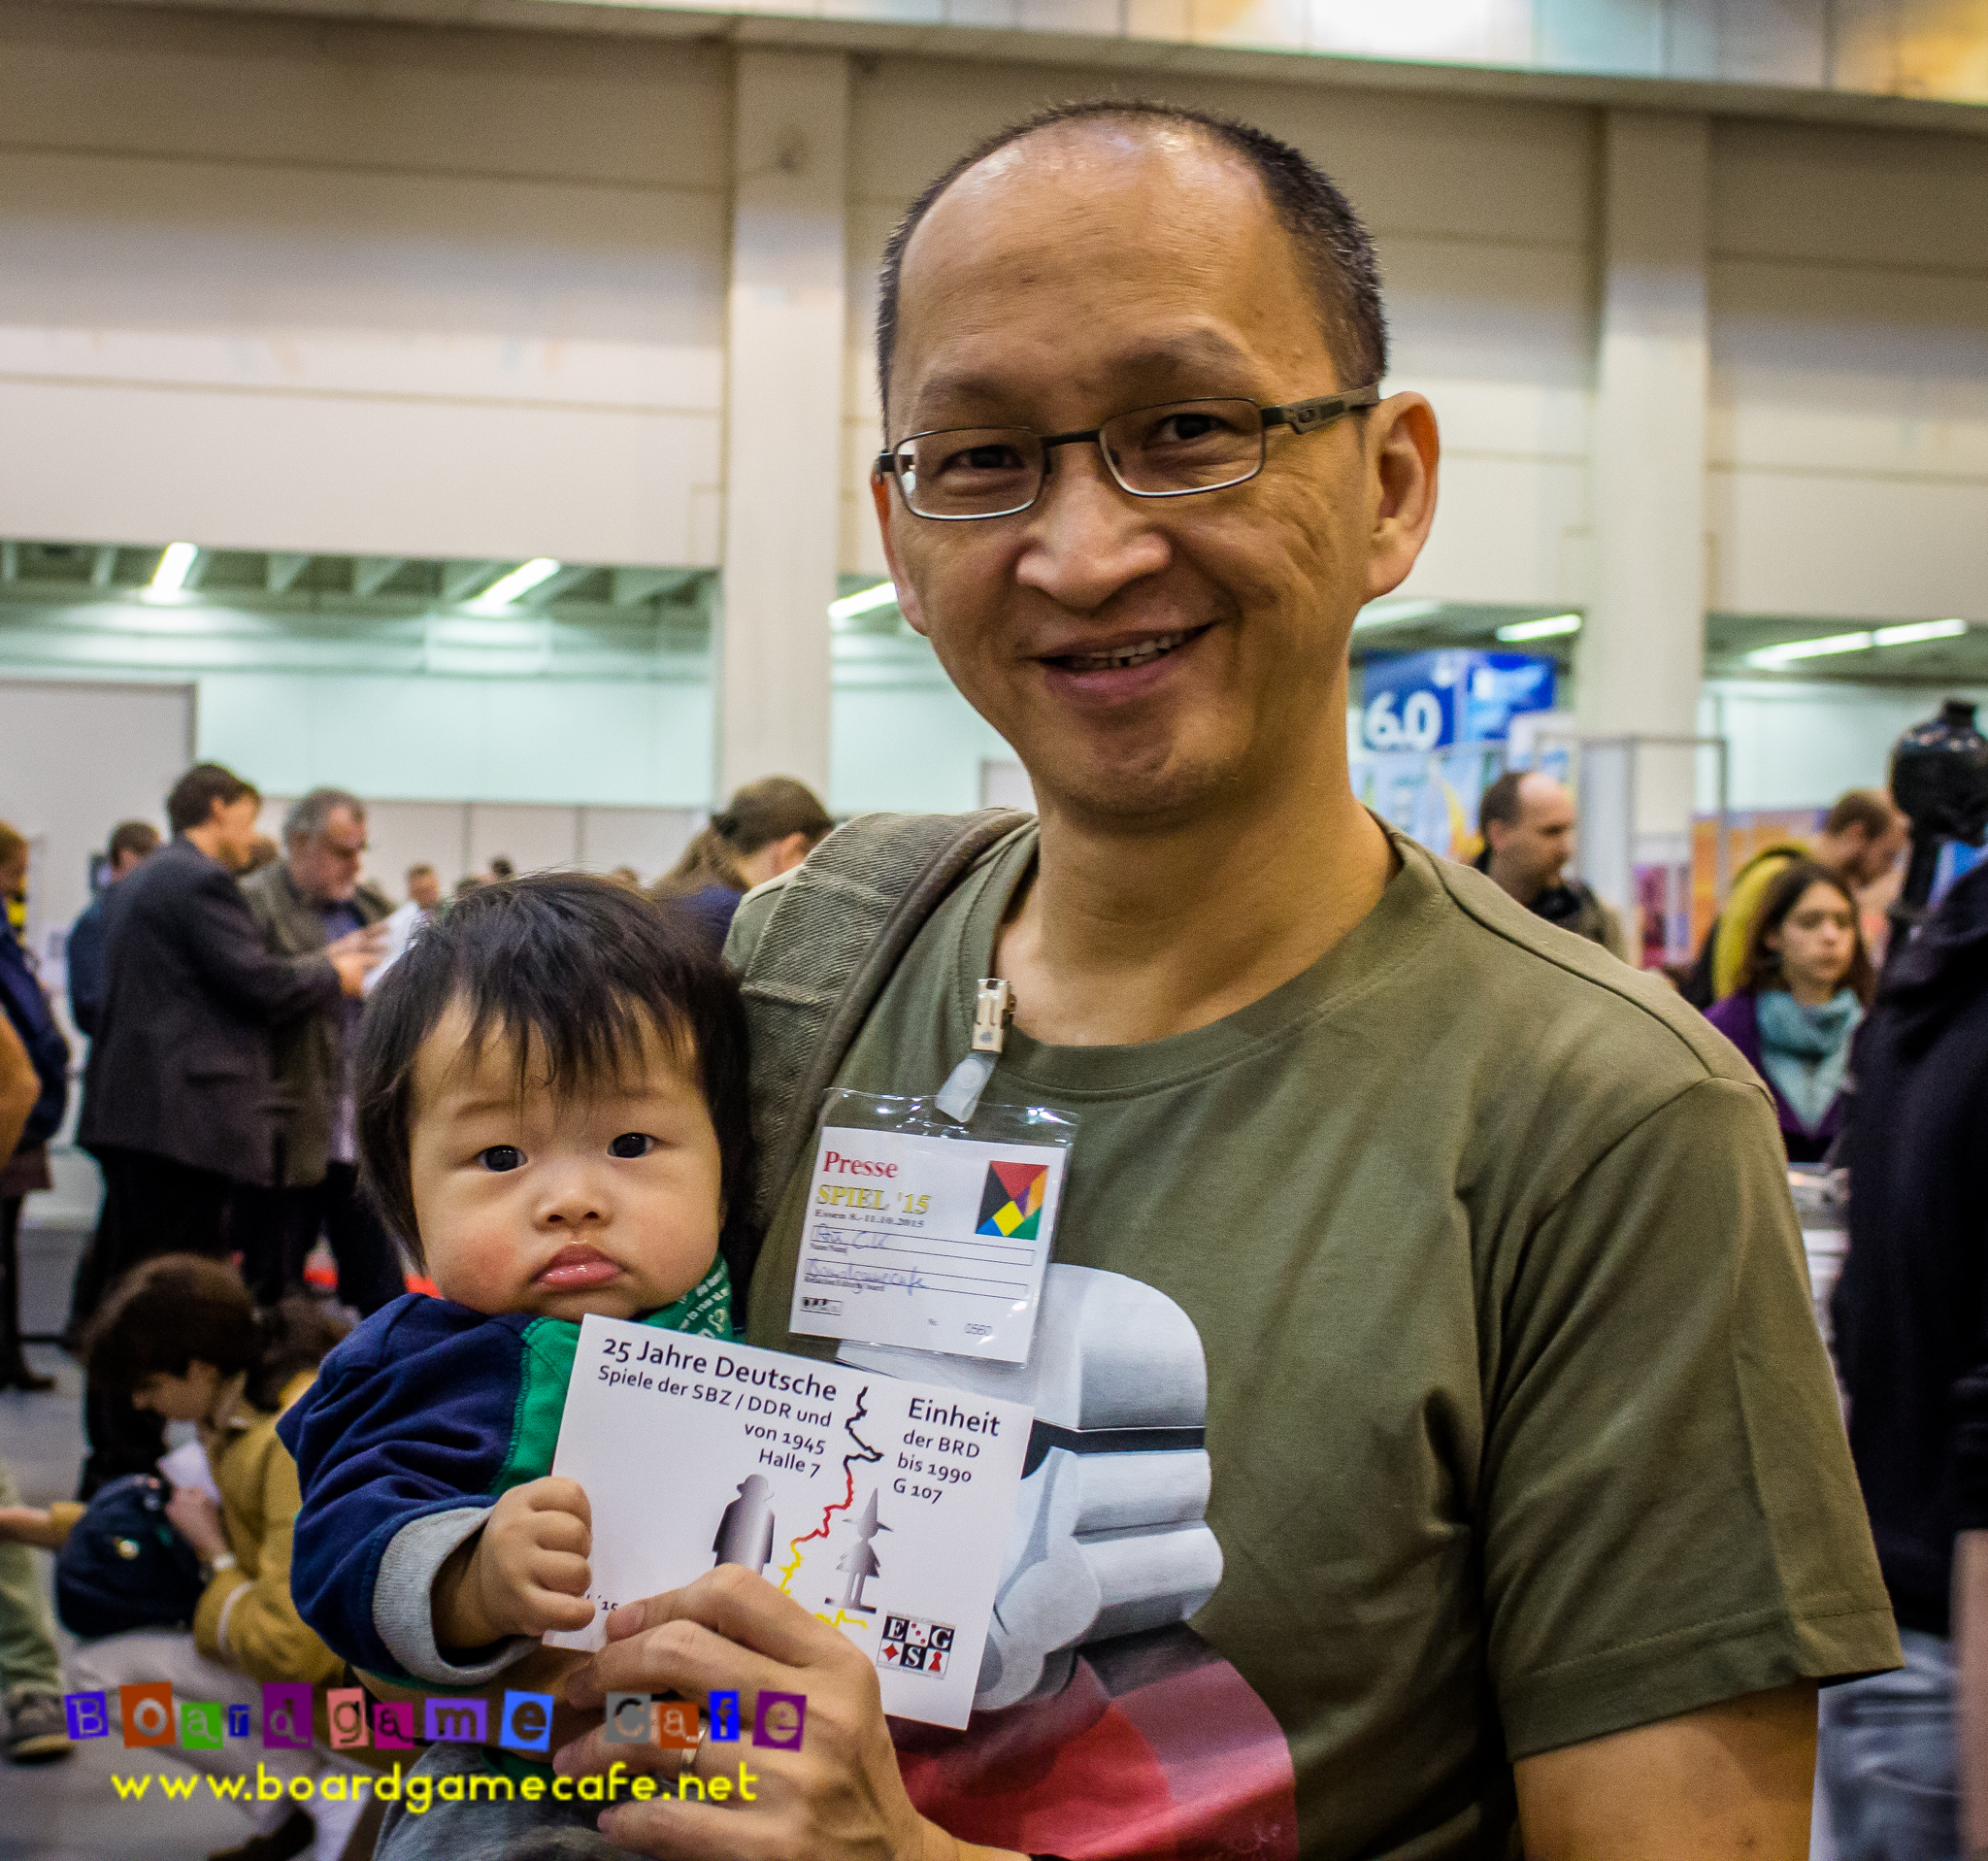 Spiel15: What does a 6-mth-old do in Essen Spiel?